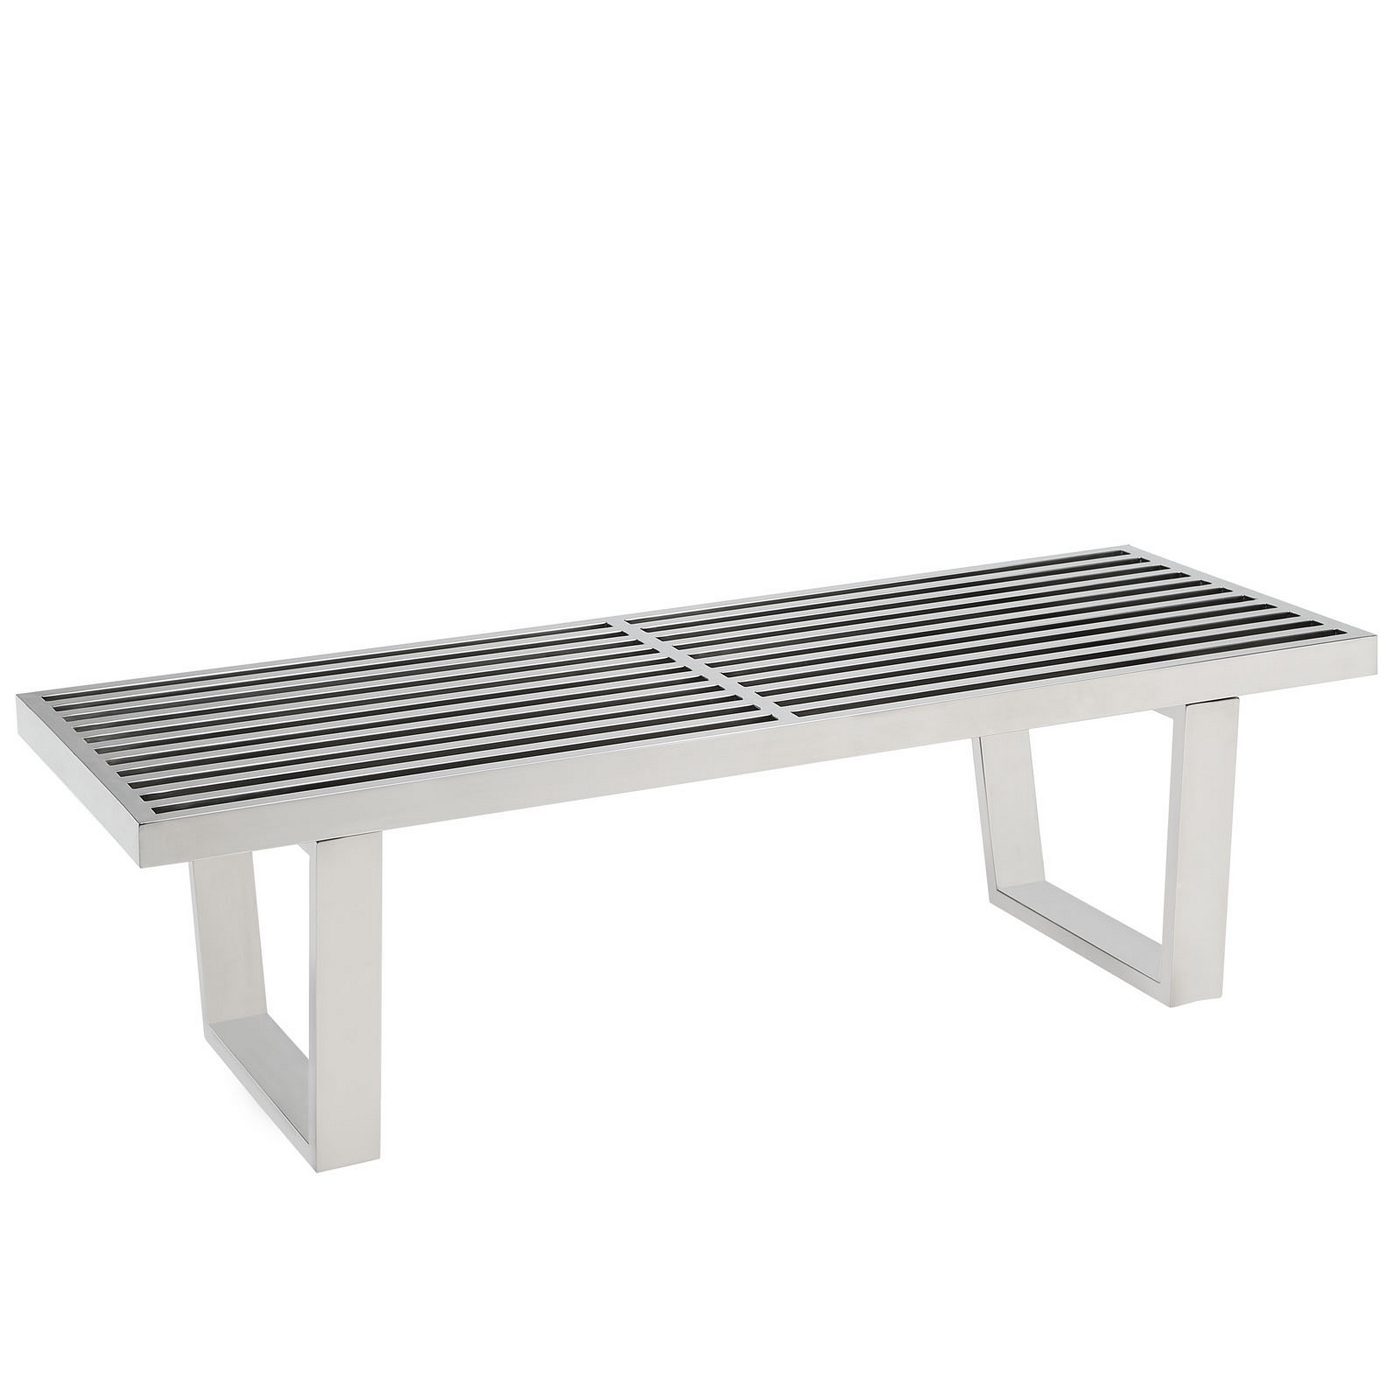 Sauna contemporary slatted stainless steel bench silver